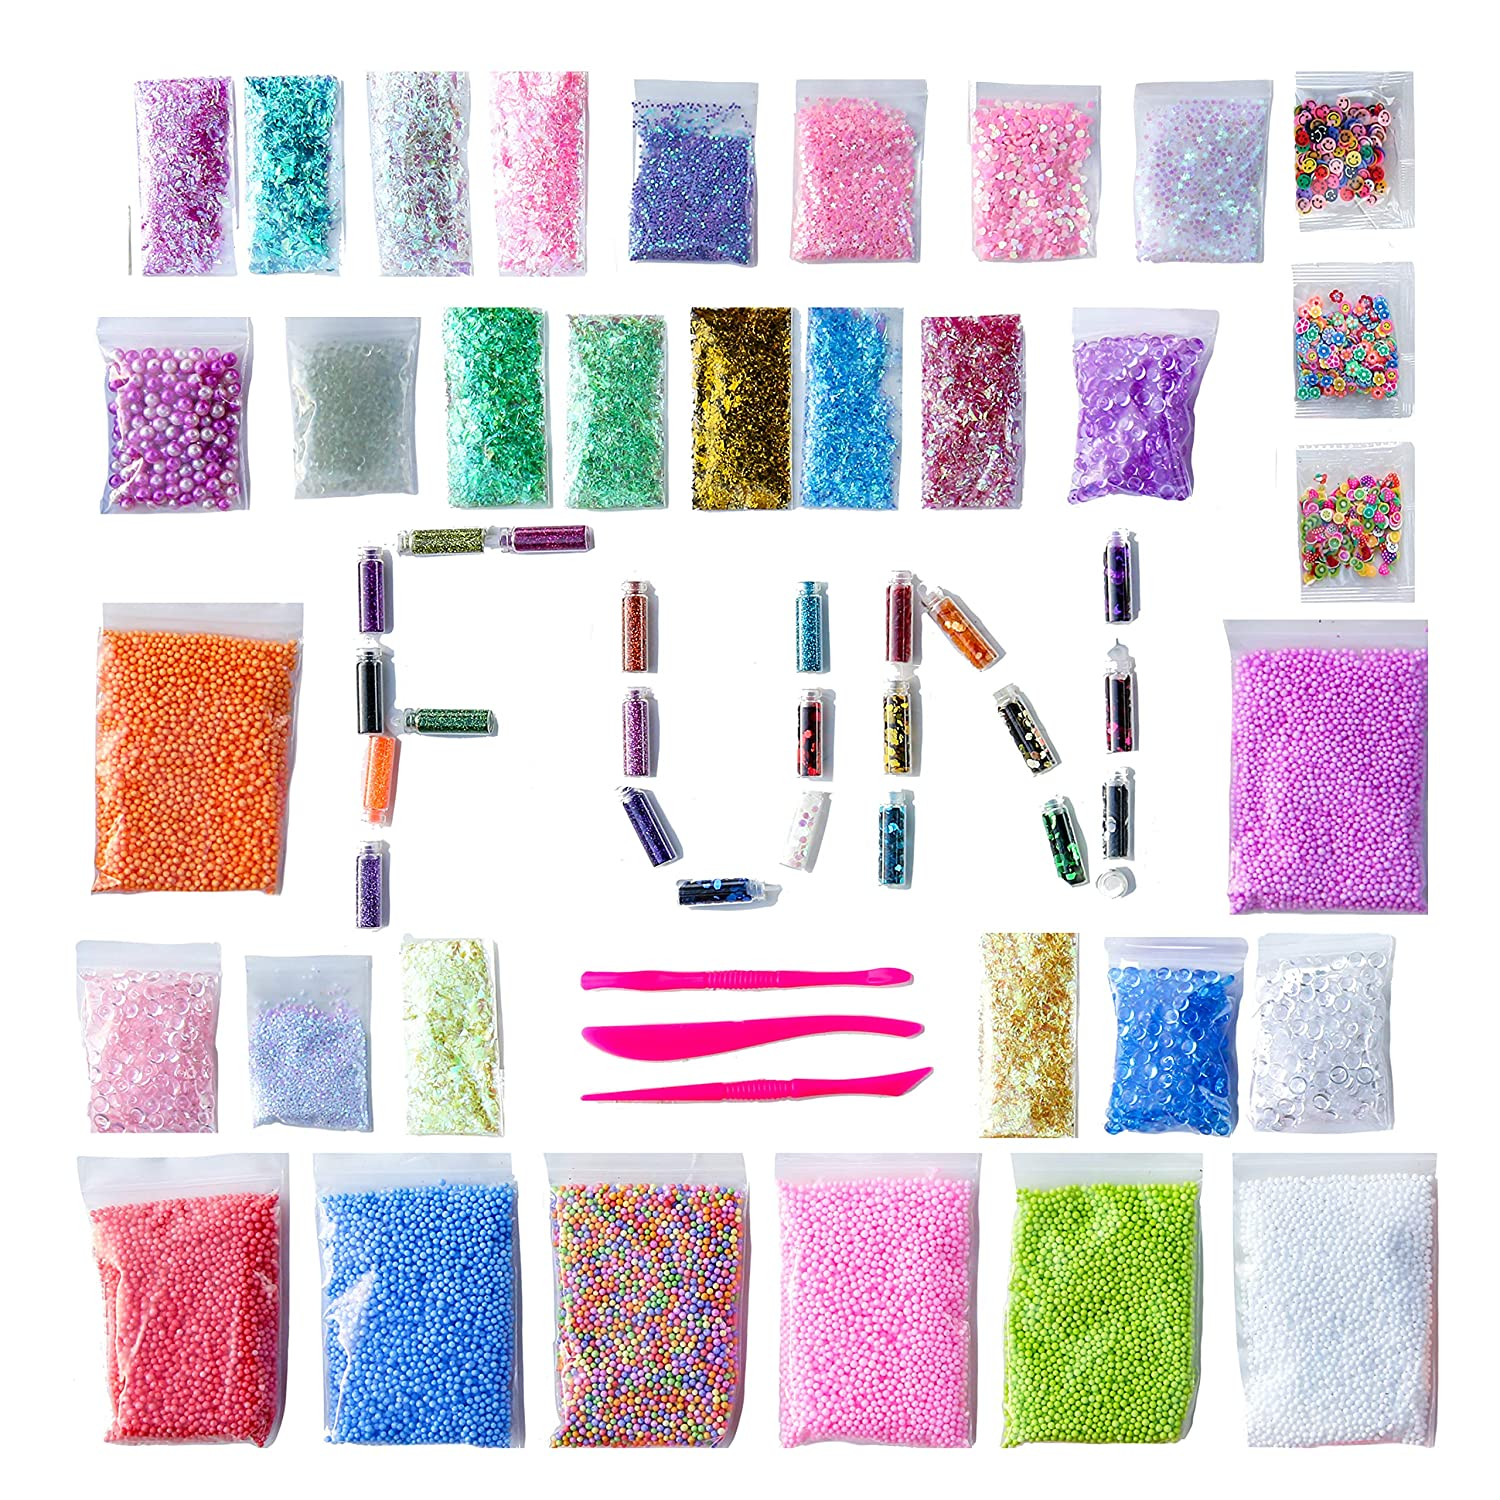 Foil Flakes 60 Pack Slime Charm Accessories Fishbowl Beads Hearts Pearls Stars 44Town Slime Supplies Kit Smiley Faces Colorful Rainbow Foam Beads Flower Slices Glitter